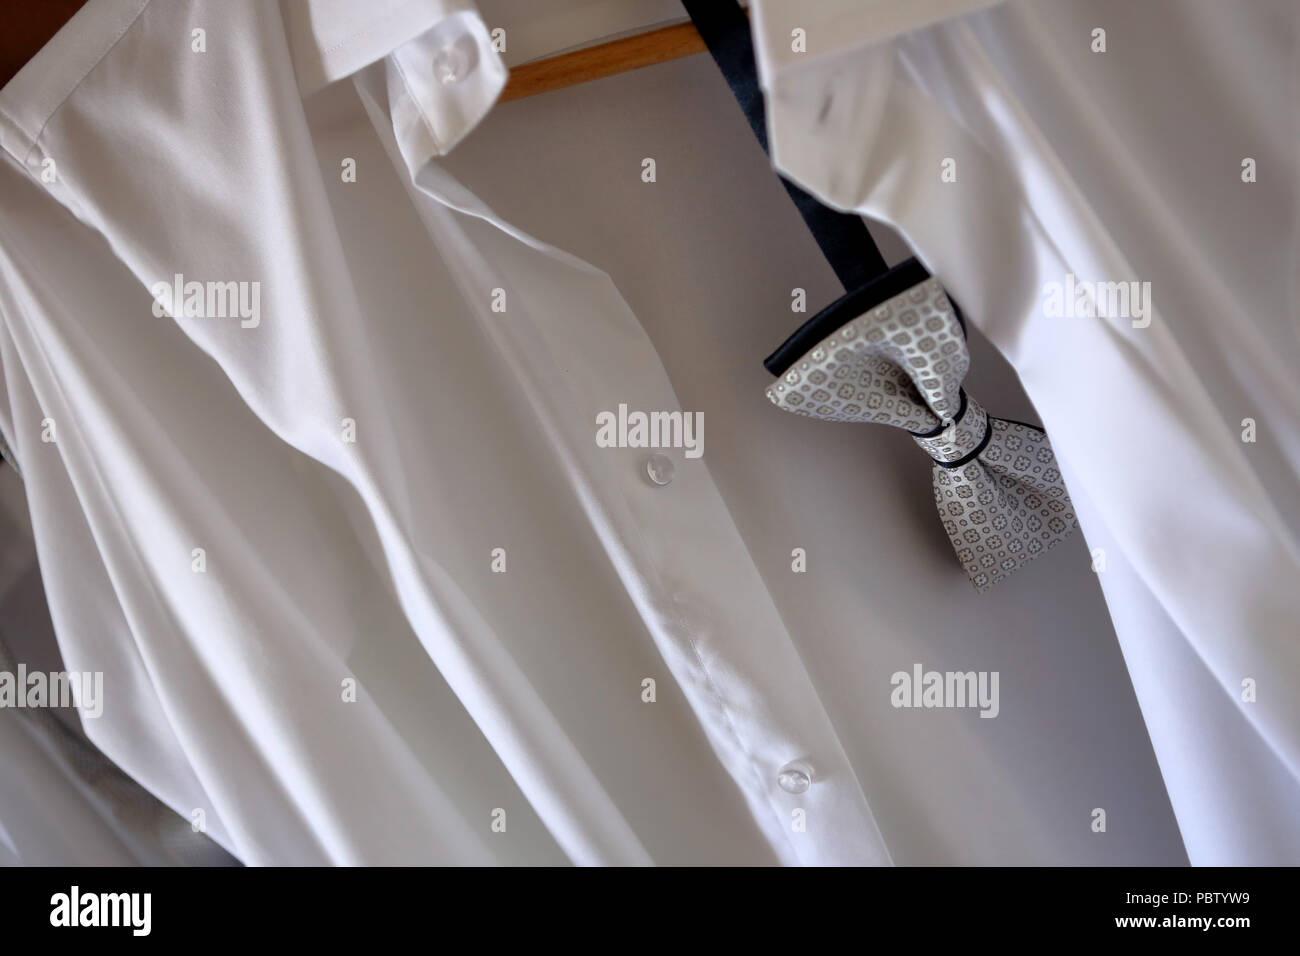 01ea1e4d2b57 Groom's shirt and bow tie ready to wear Stock Photo: 213834357 - Alamy